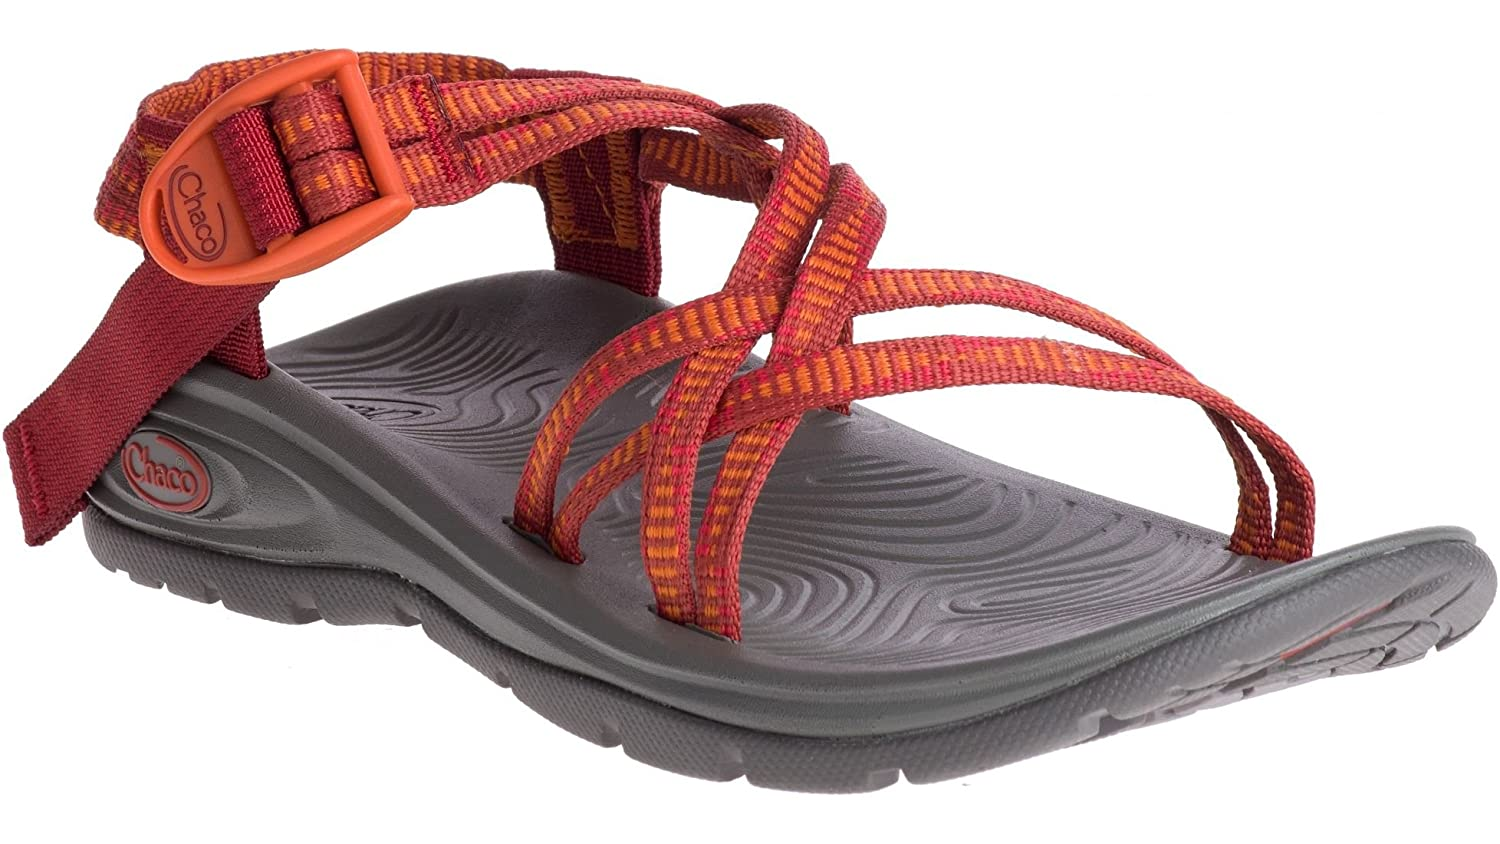 Chaco Women's Zvolv X Athletic Sandal B072KGB299 9 B(M) US|Grouped Poppy